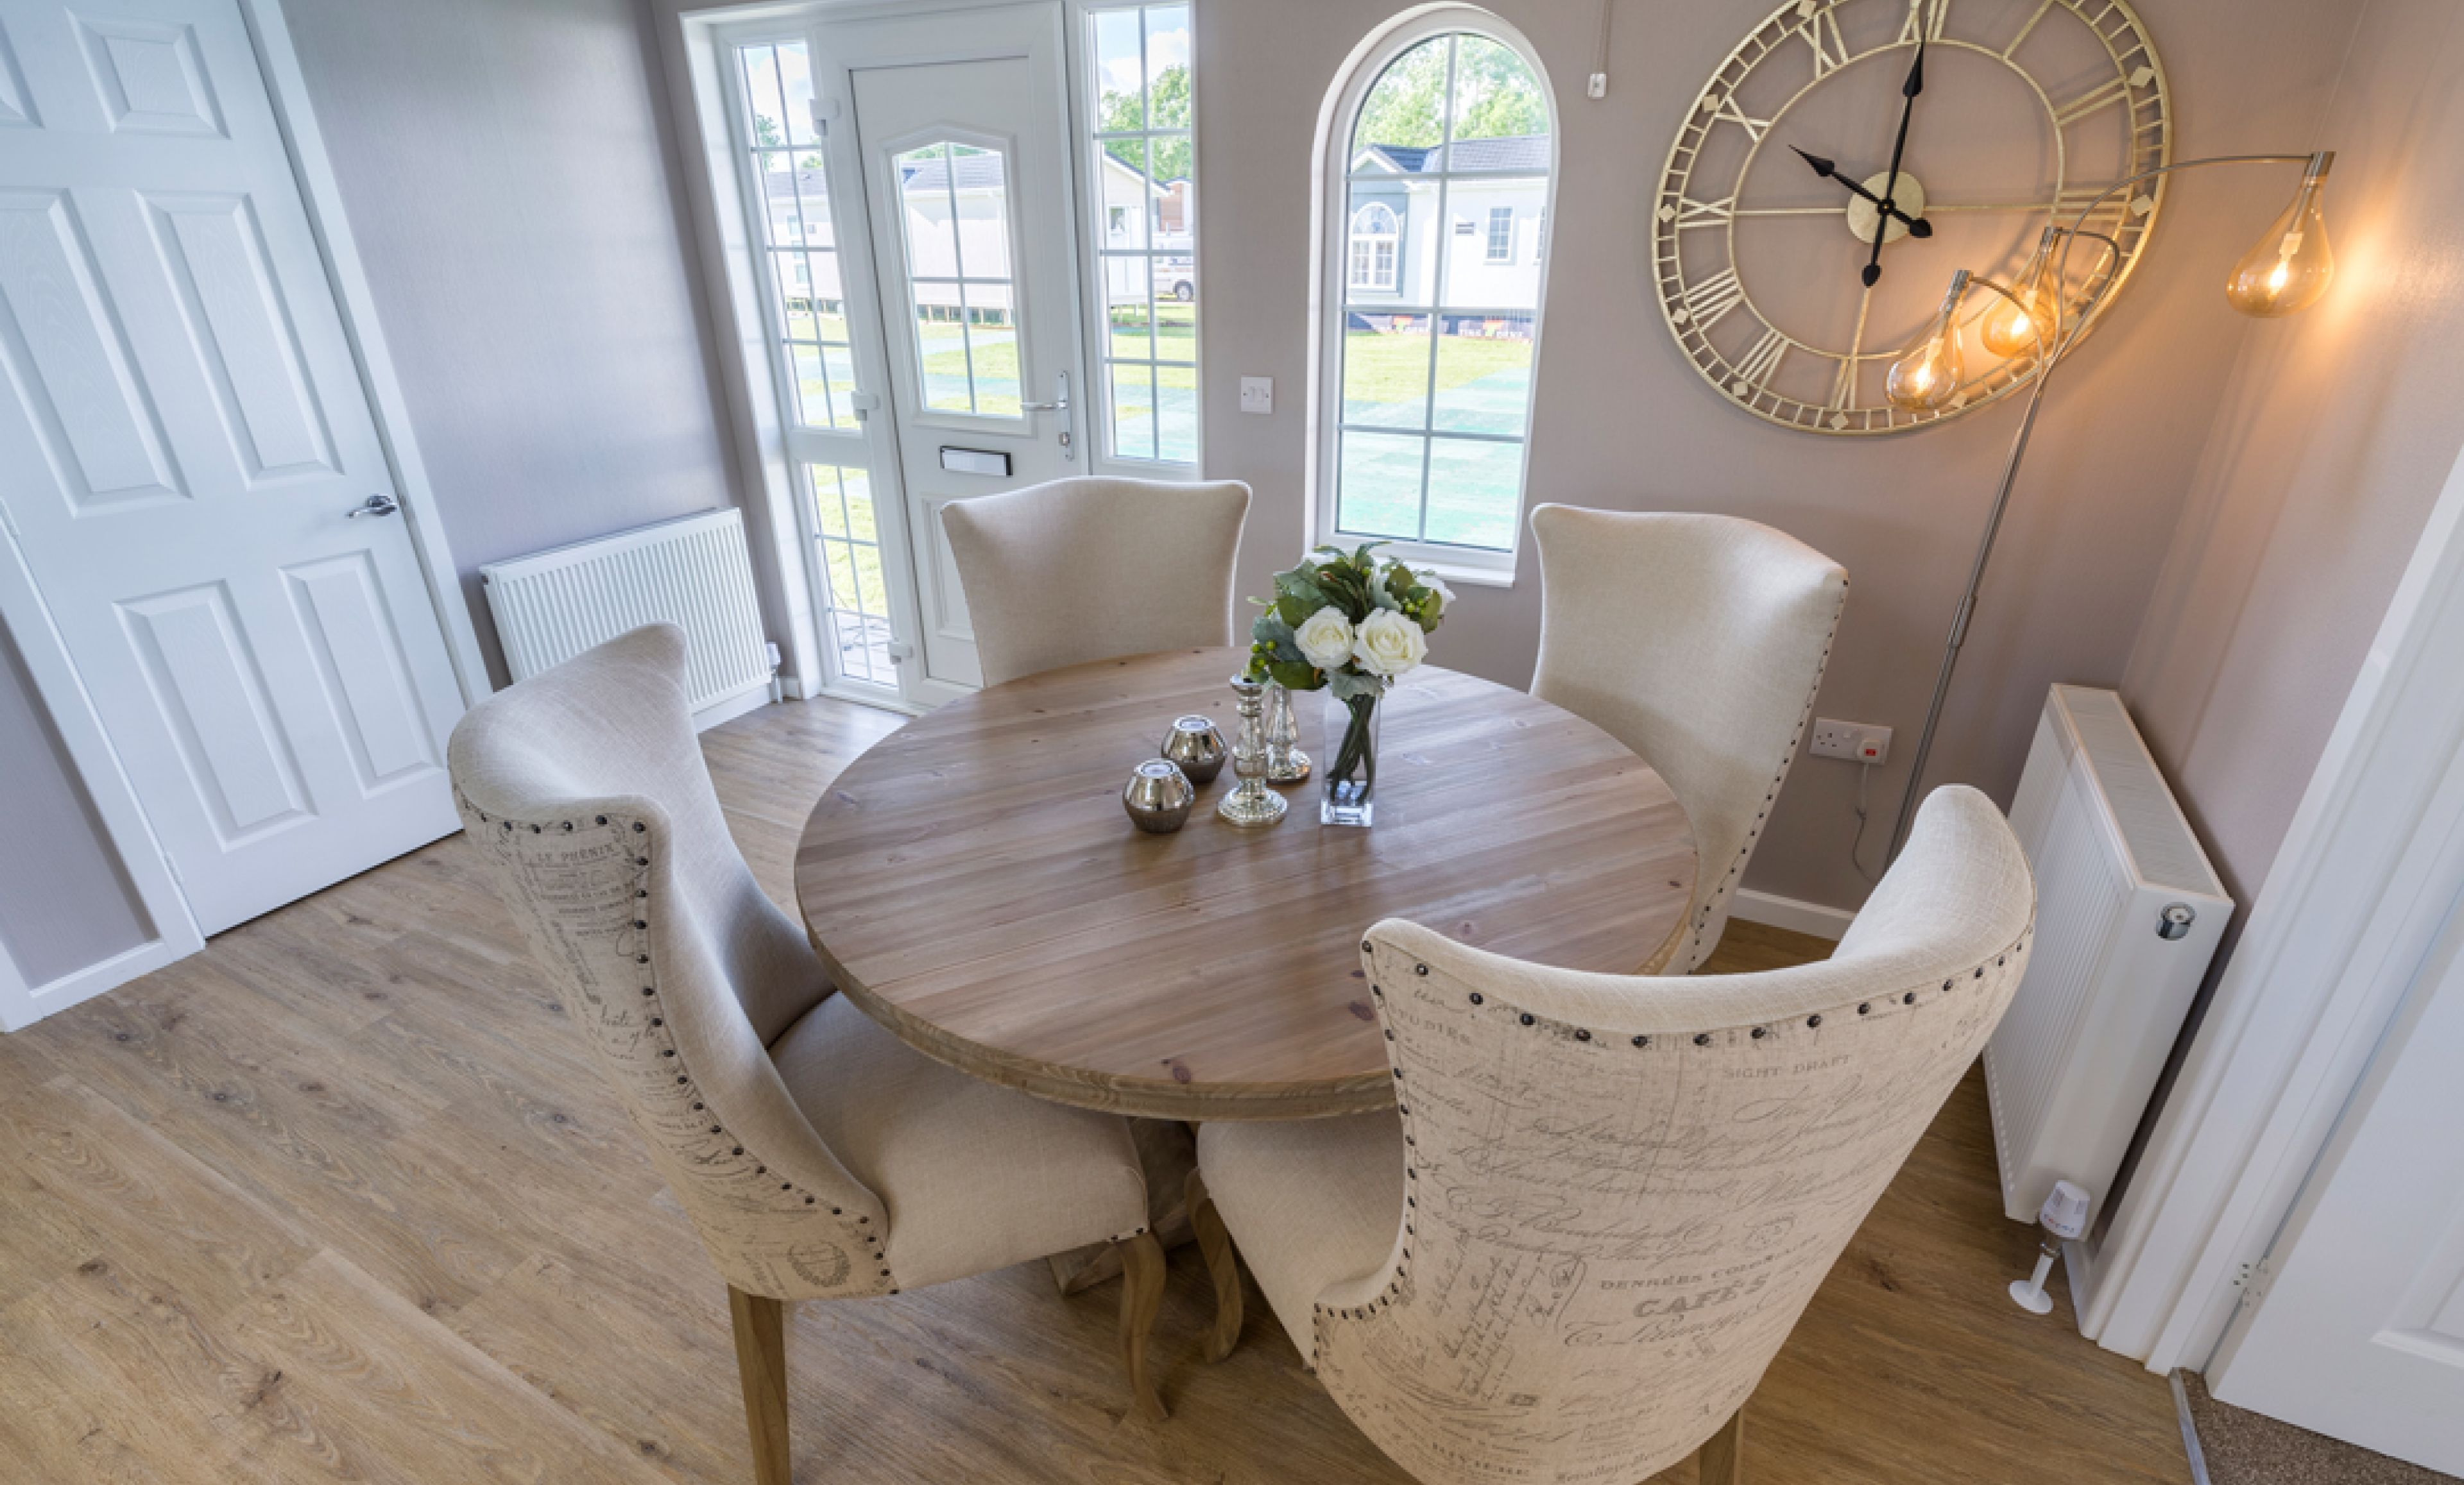 The Regency Classic dining room